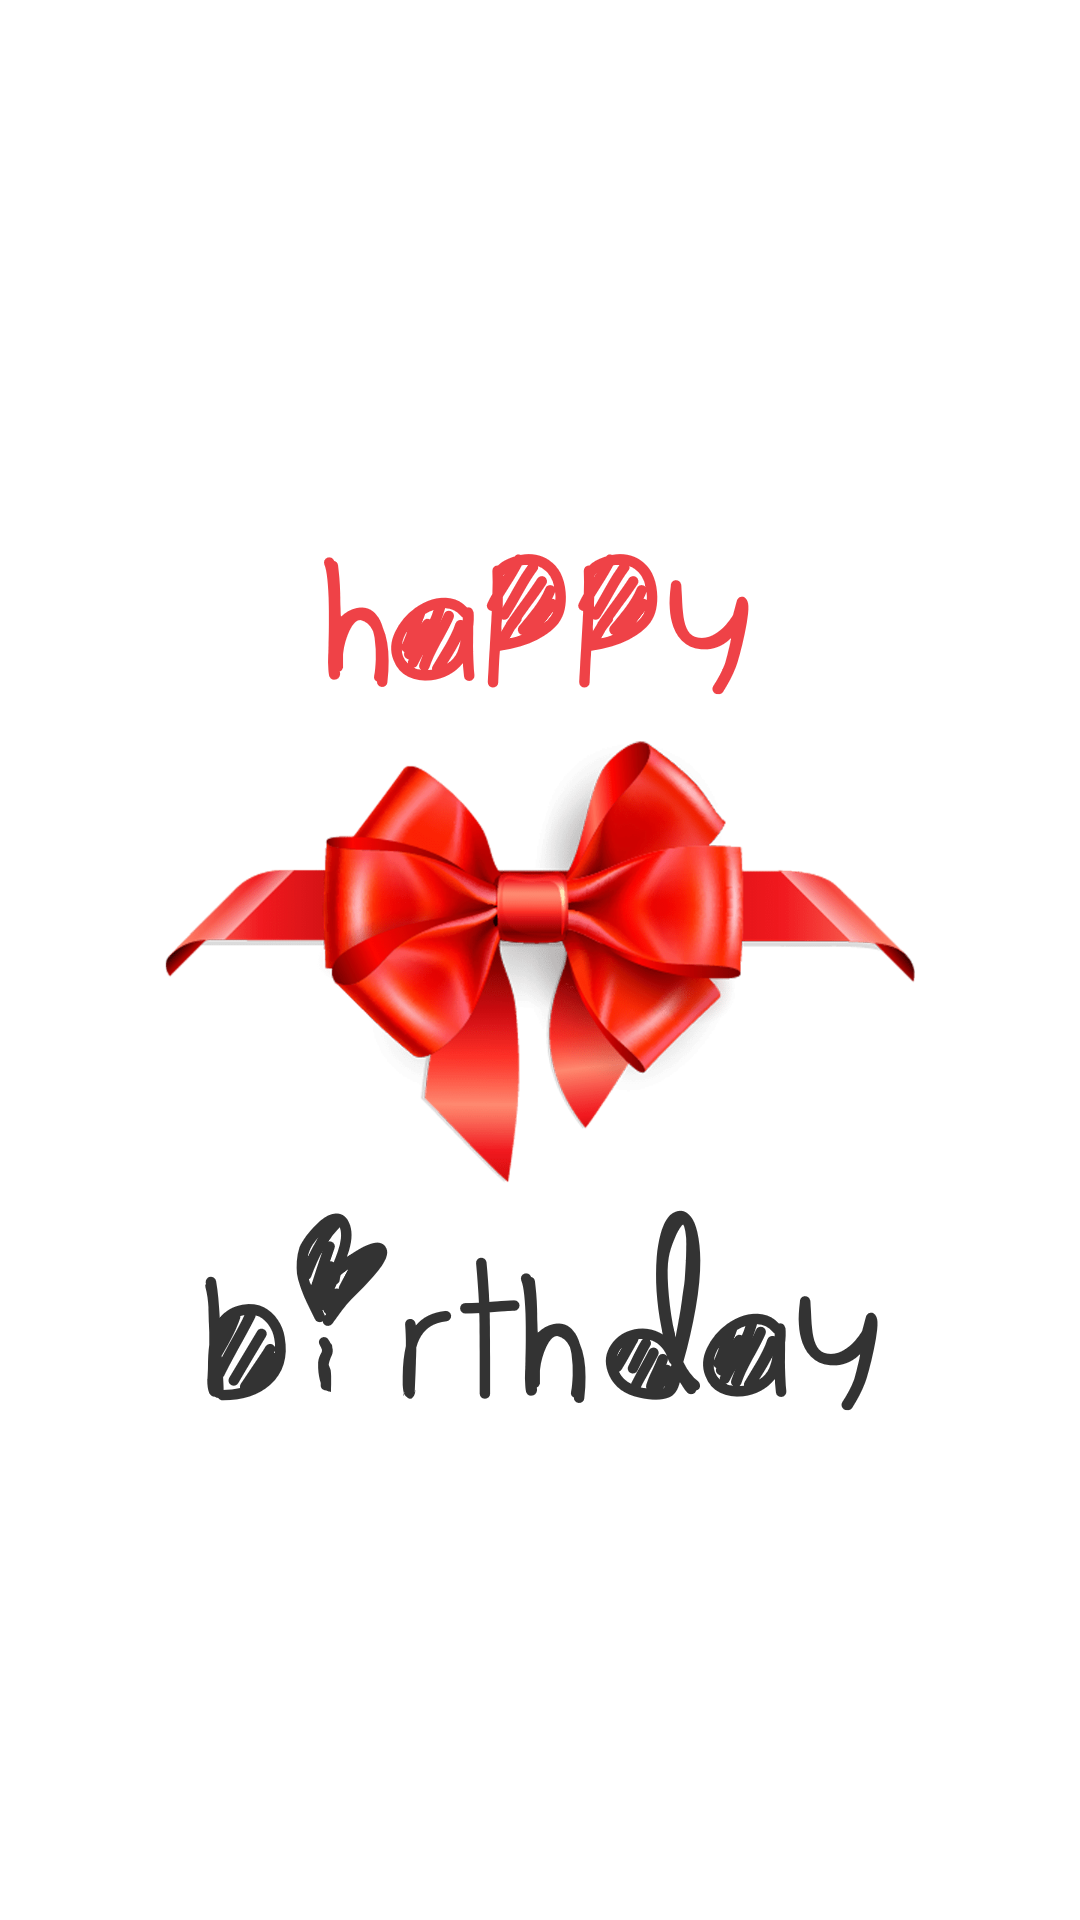 Happy Birthday Graphic for Your Animation  Template